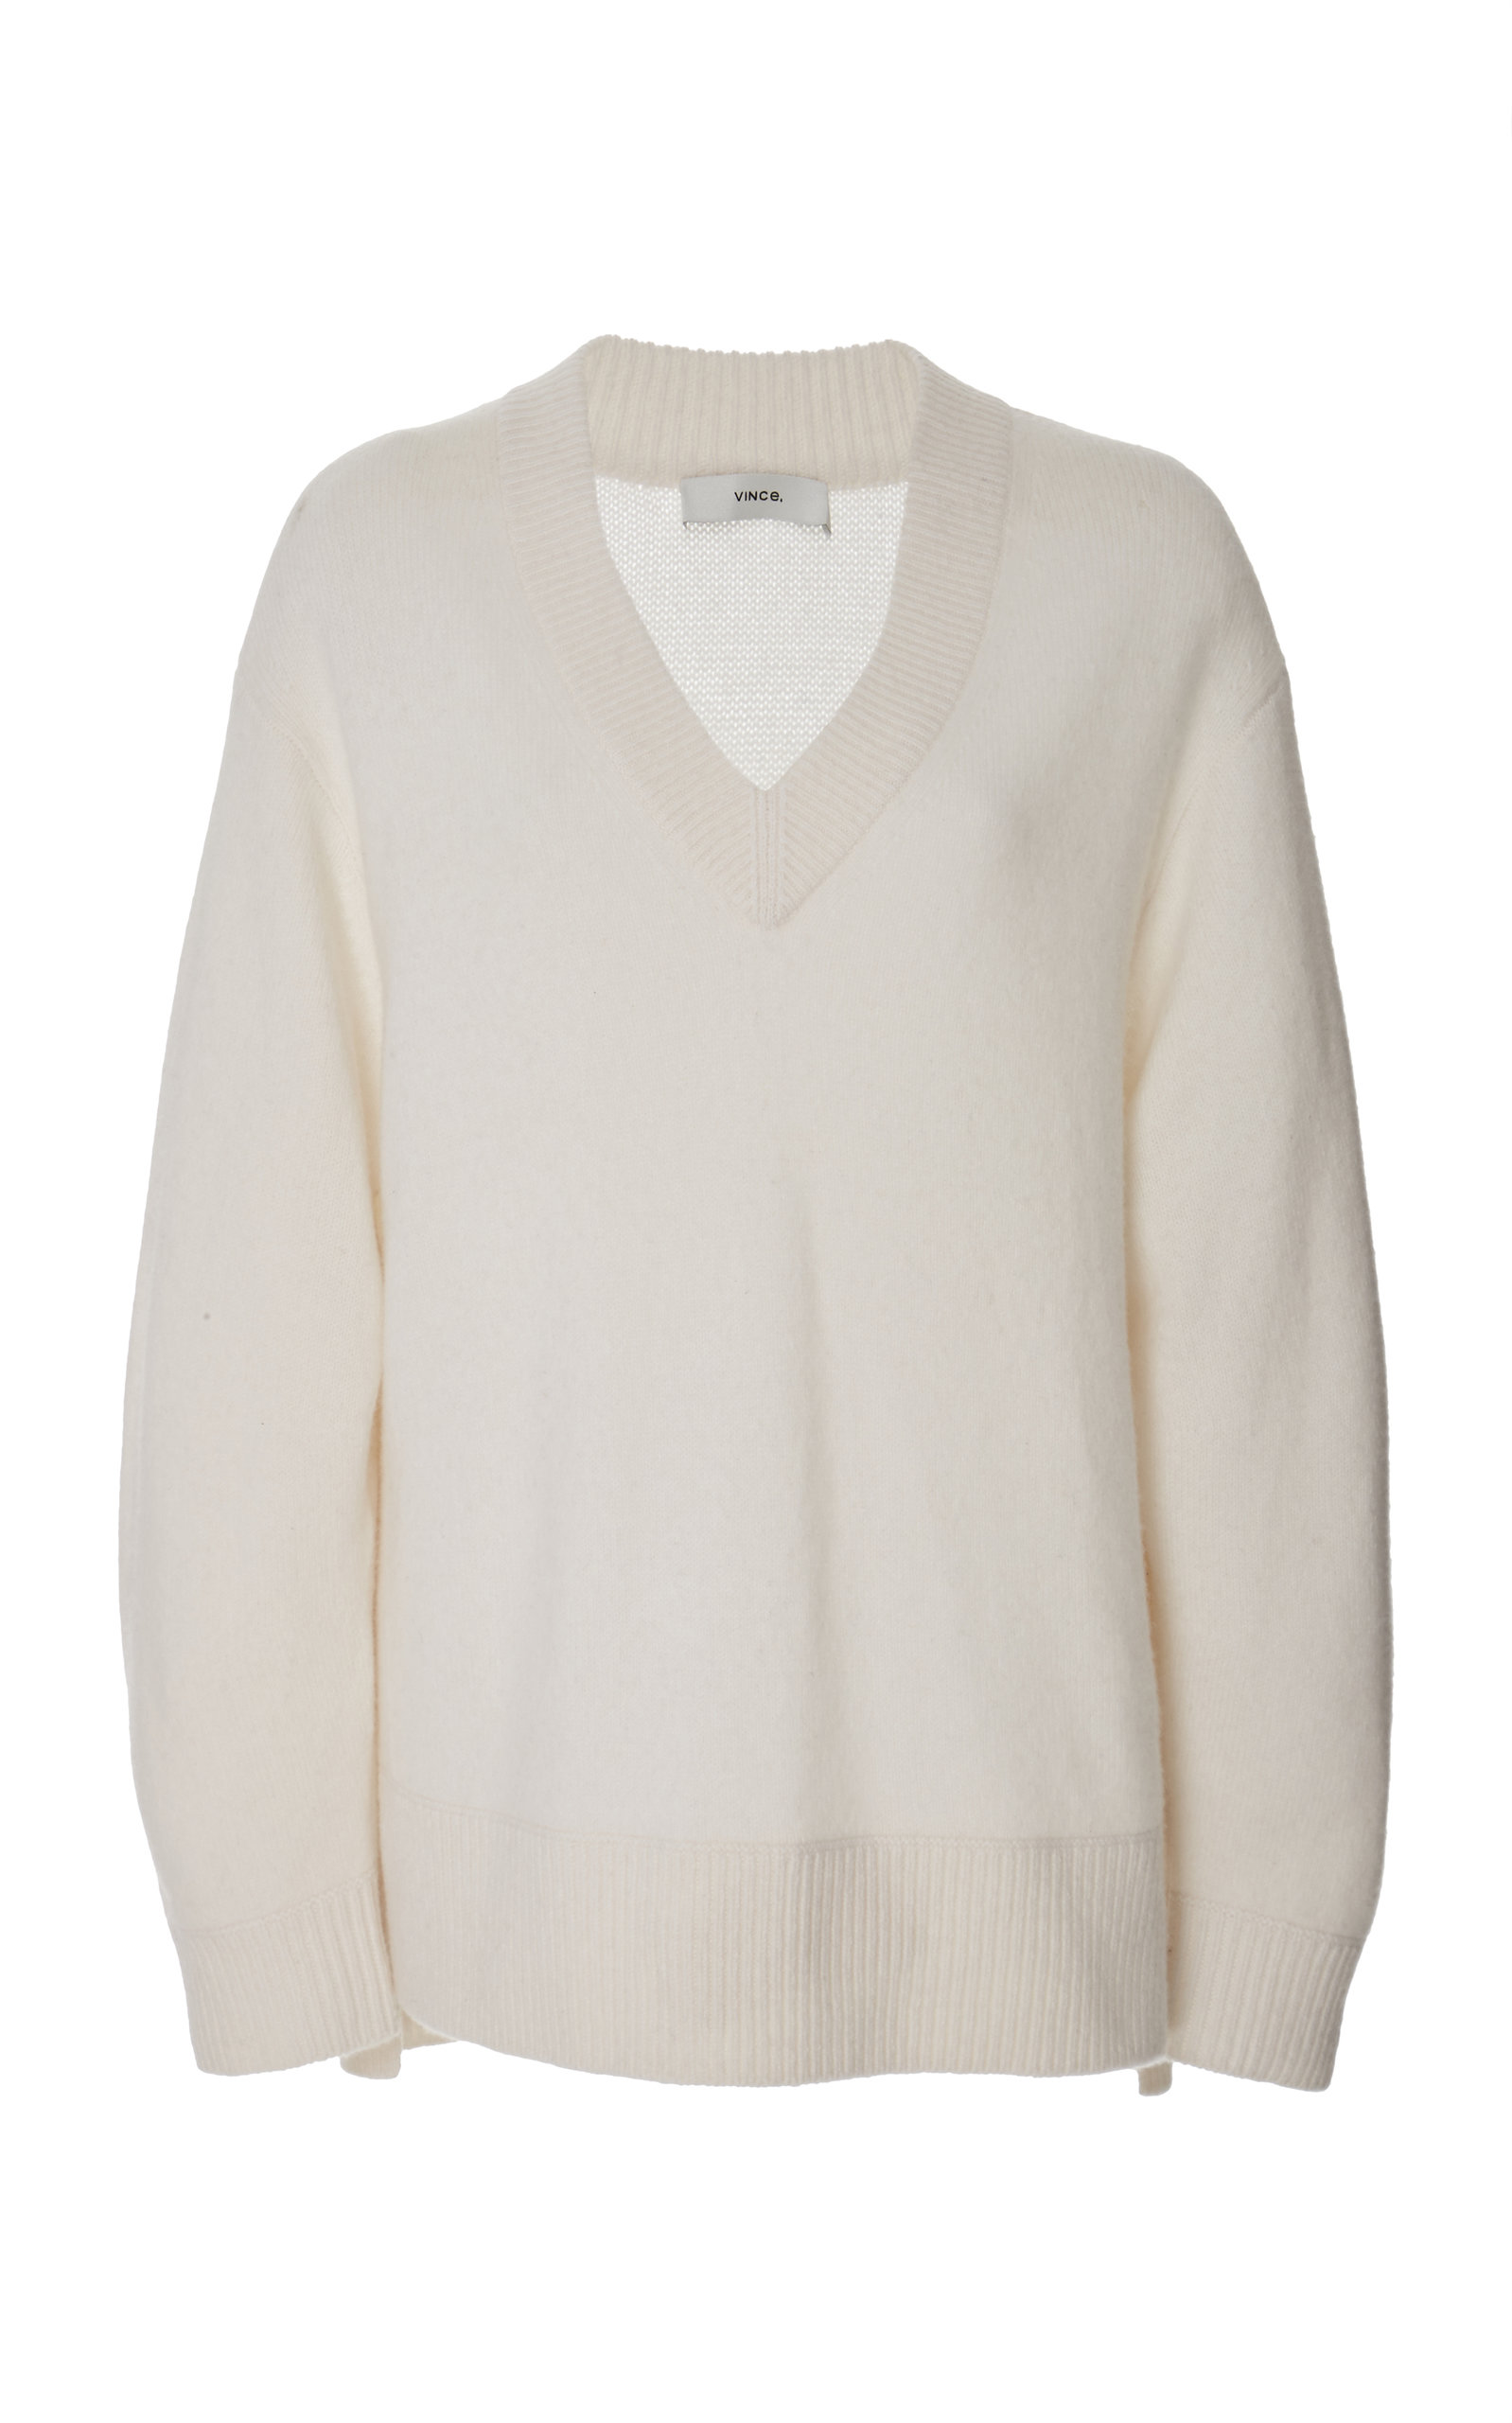 Vince Oversized Ribbed-Knit Cashmere Sweater In White